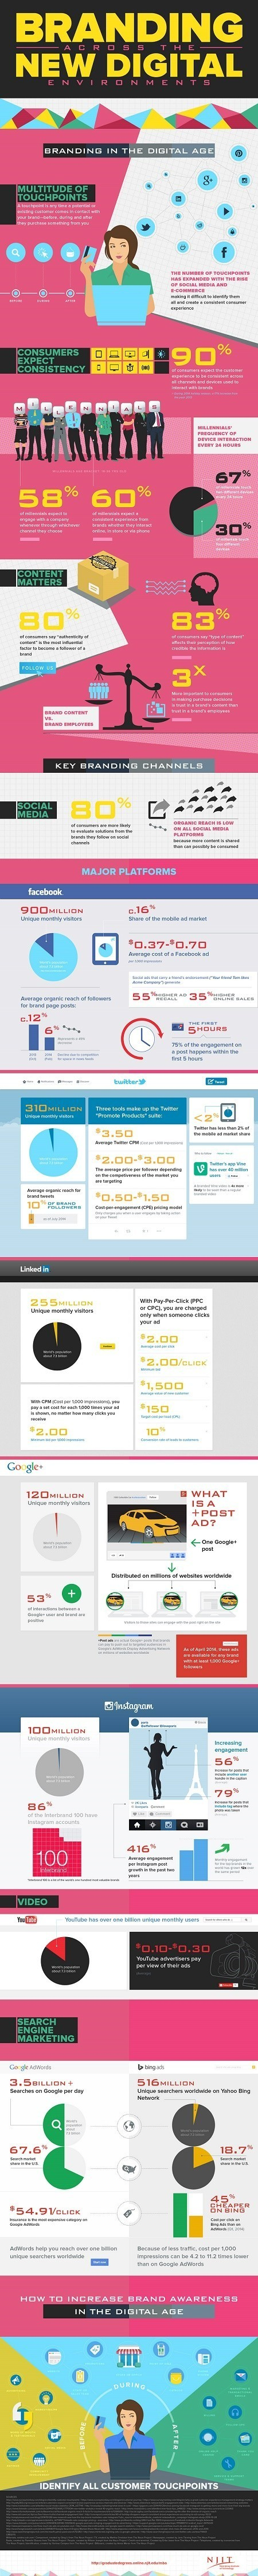 How to Brand Across Multiple Touchpoints [Infographic] | Content curation | Scoop.it